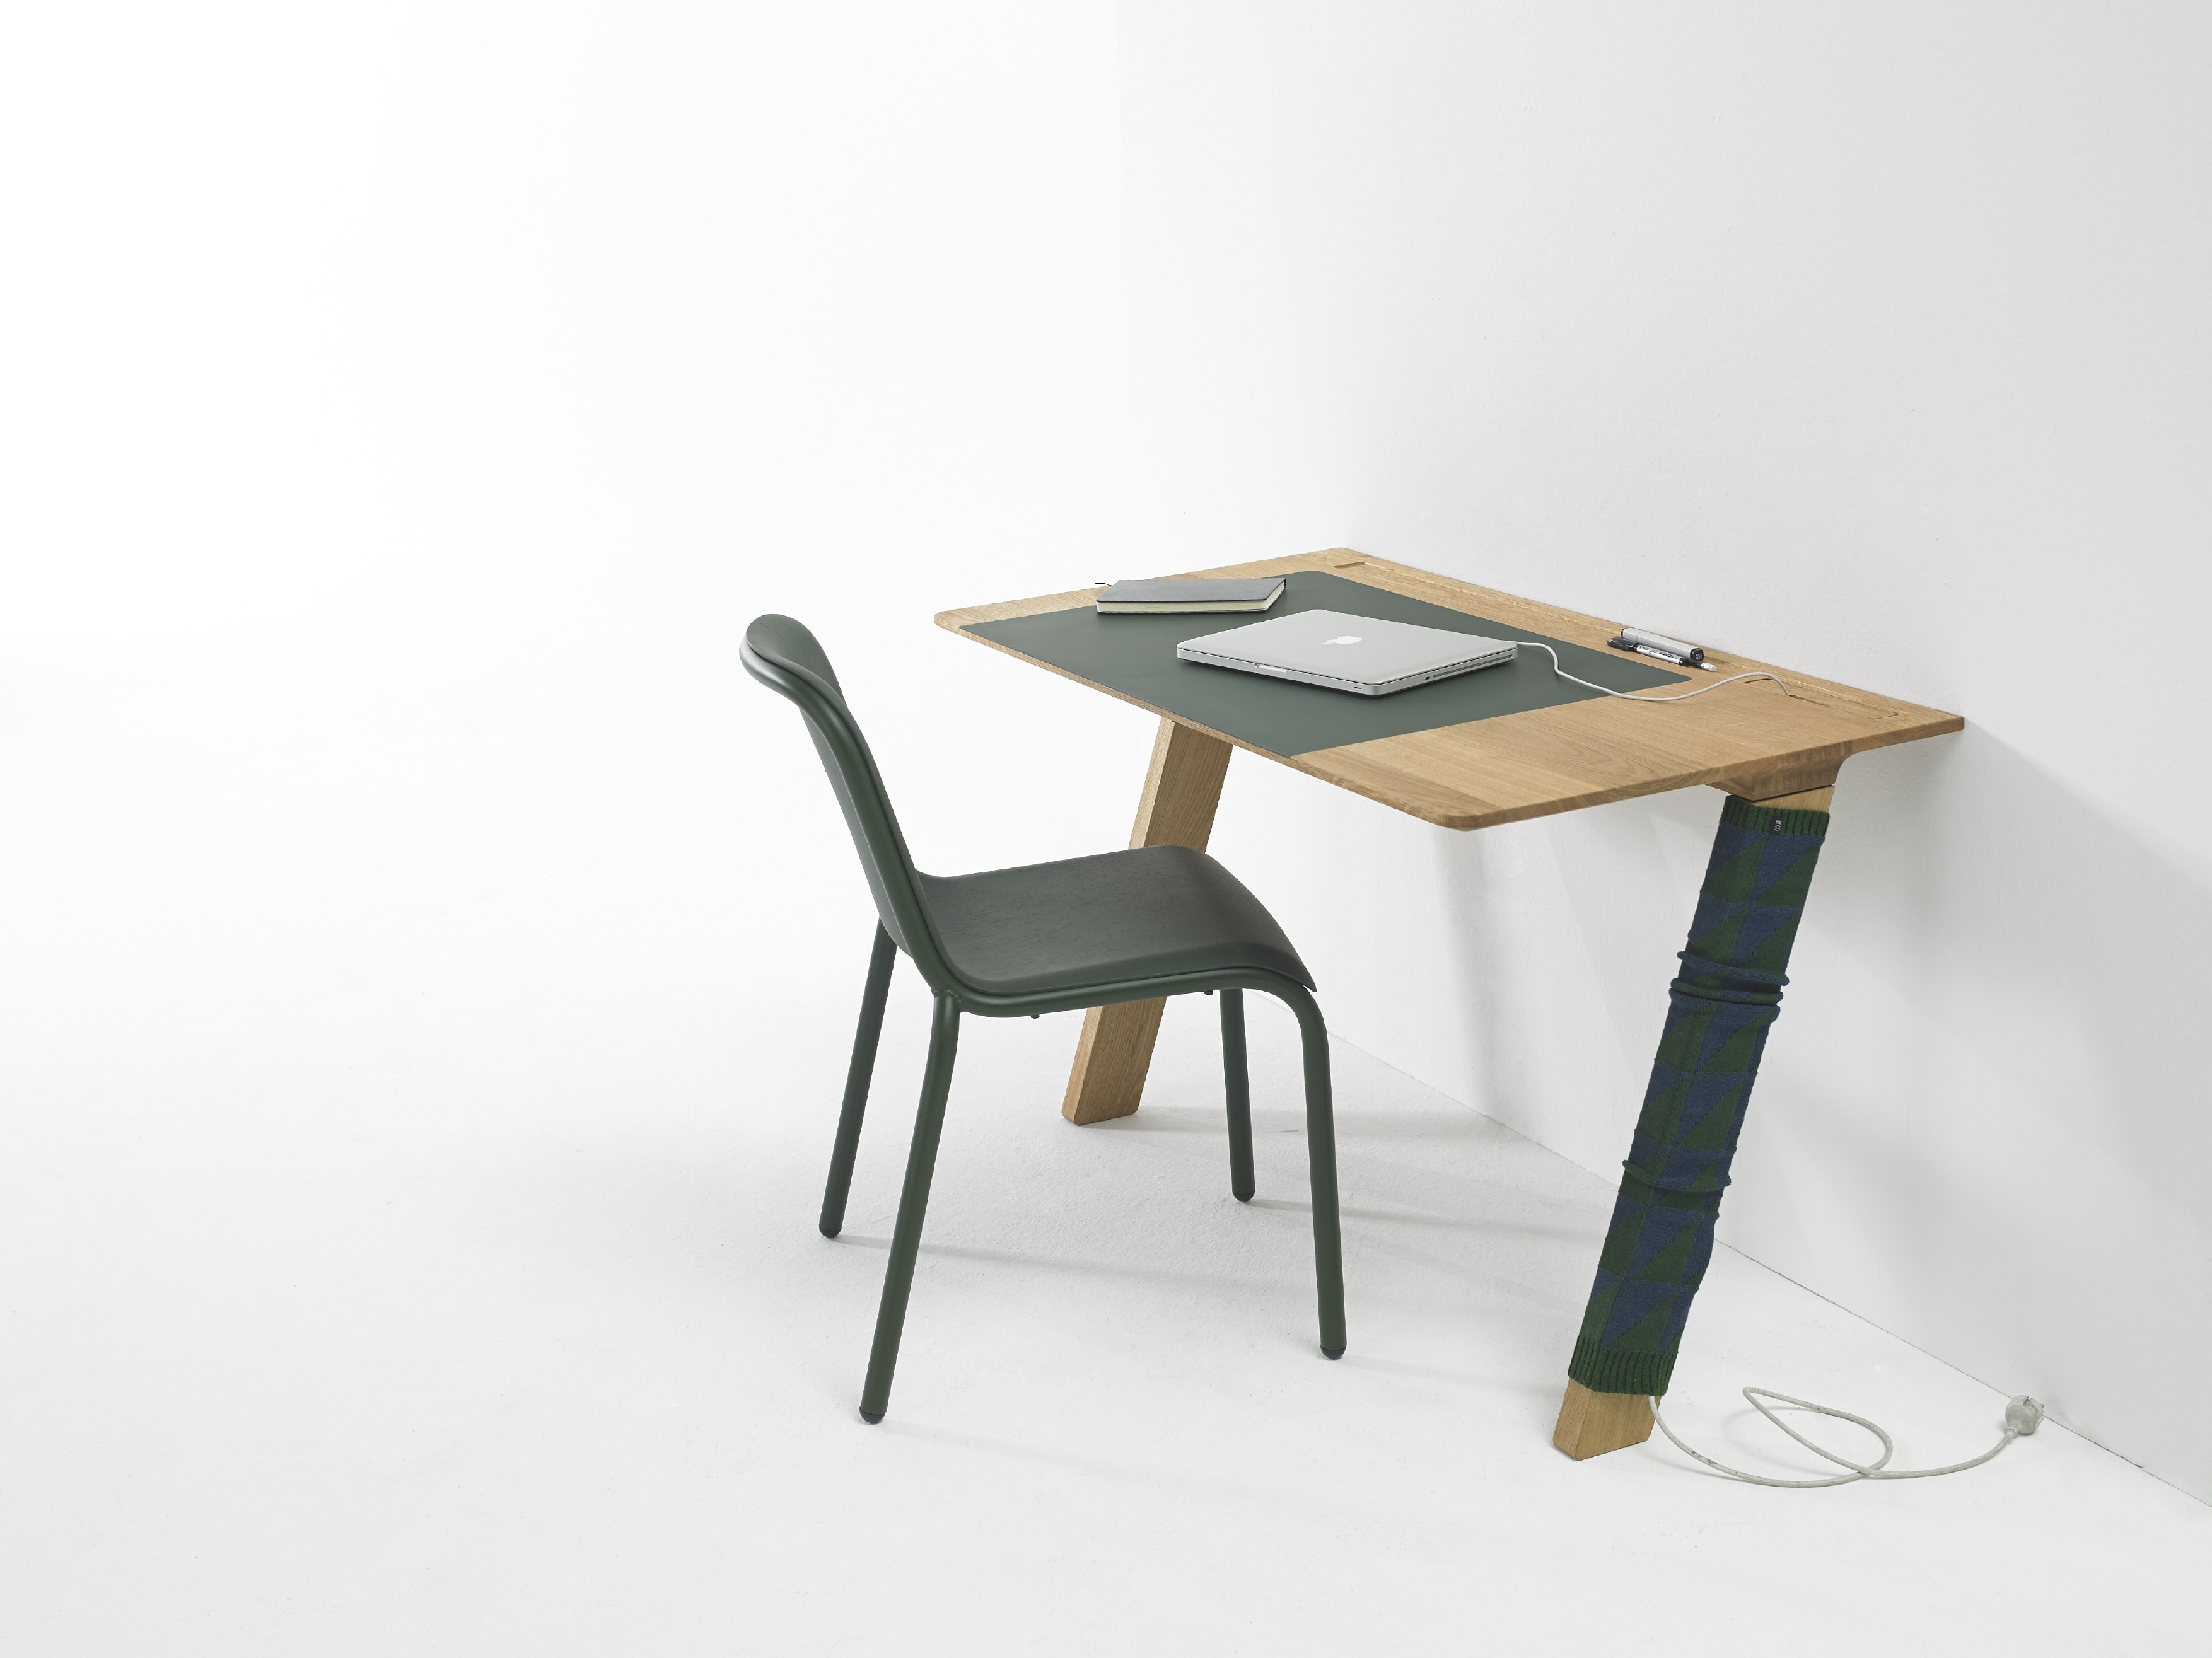 zeta desk chair padded dining chairs joy leibal is a minimalist design created by netherlands based designer arco the